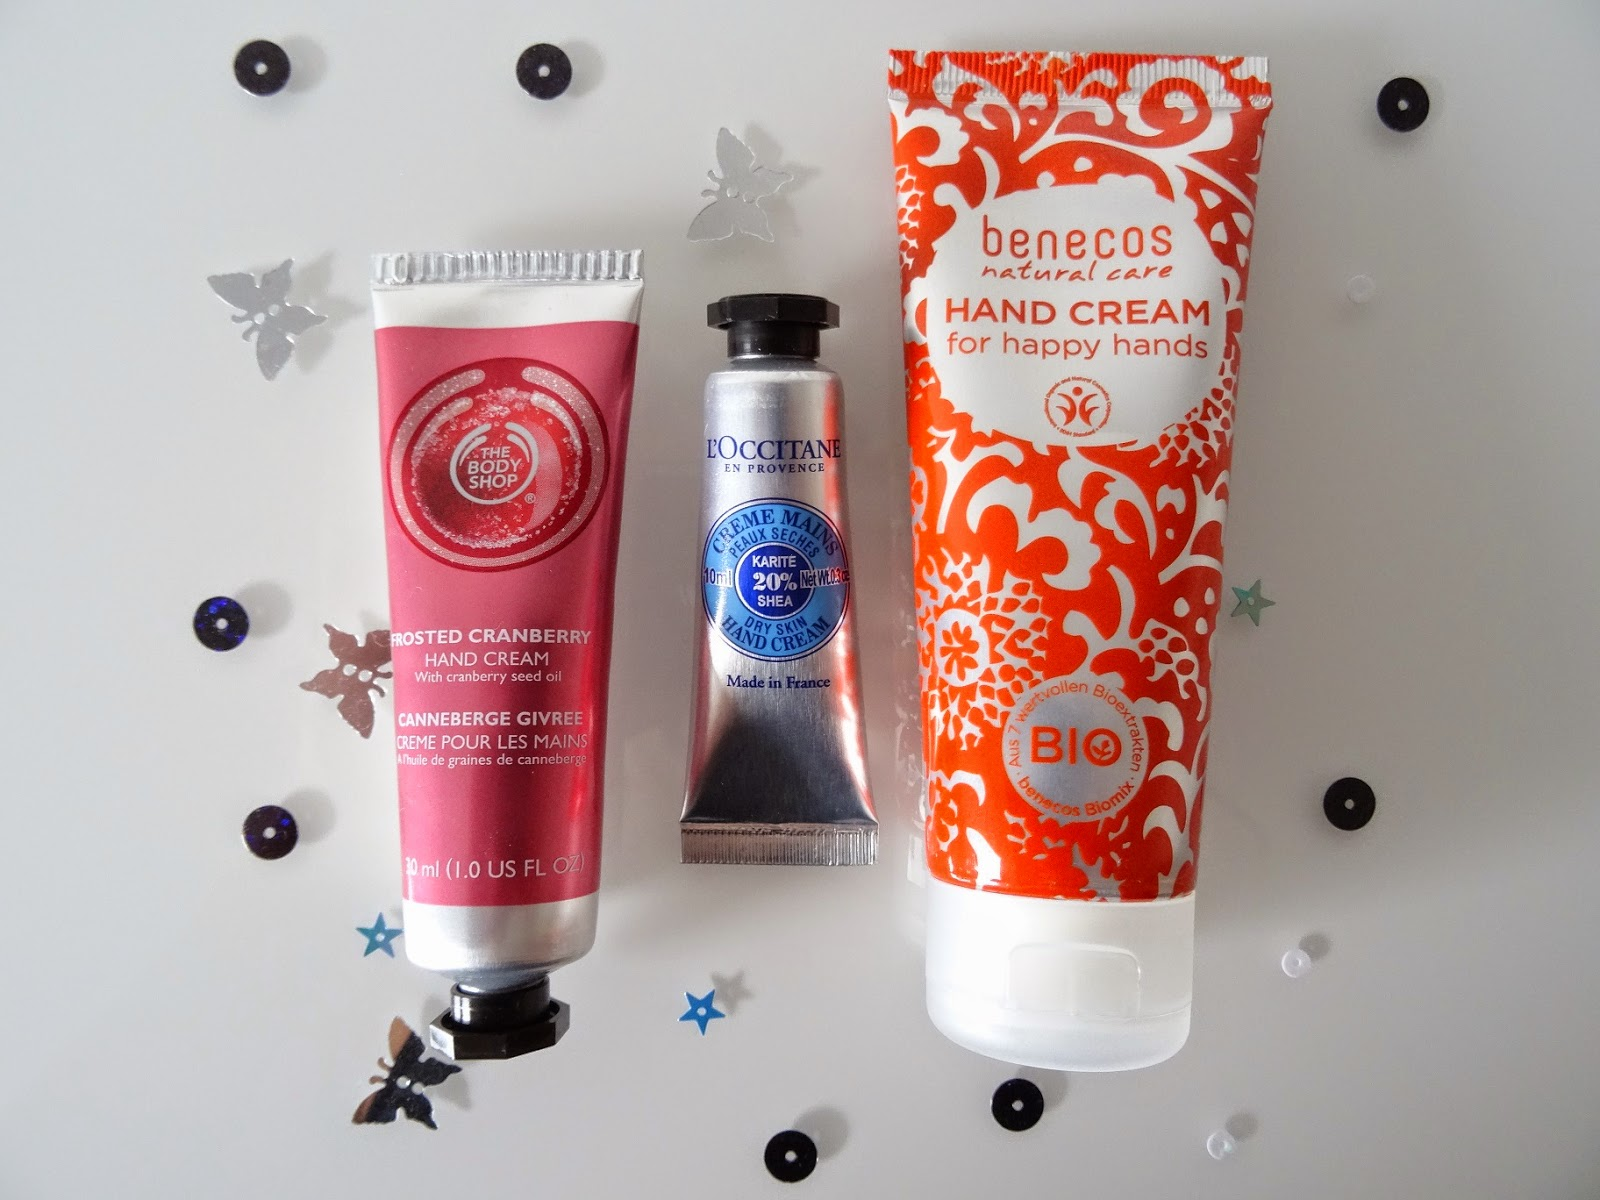 Hand cream reviews